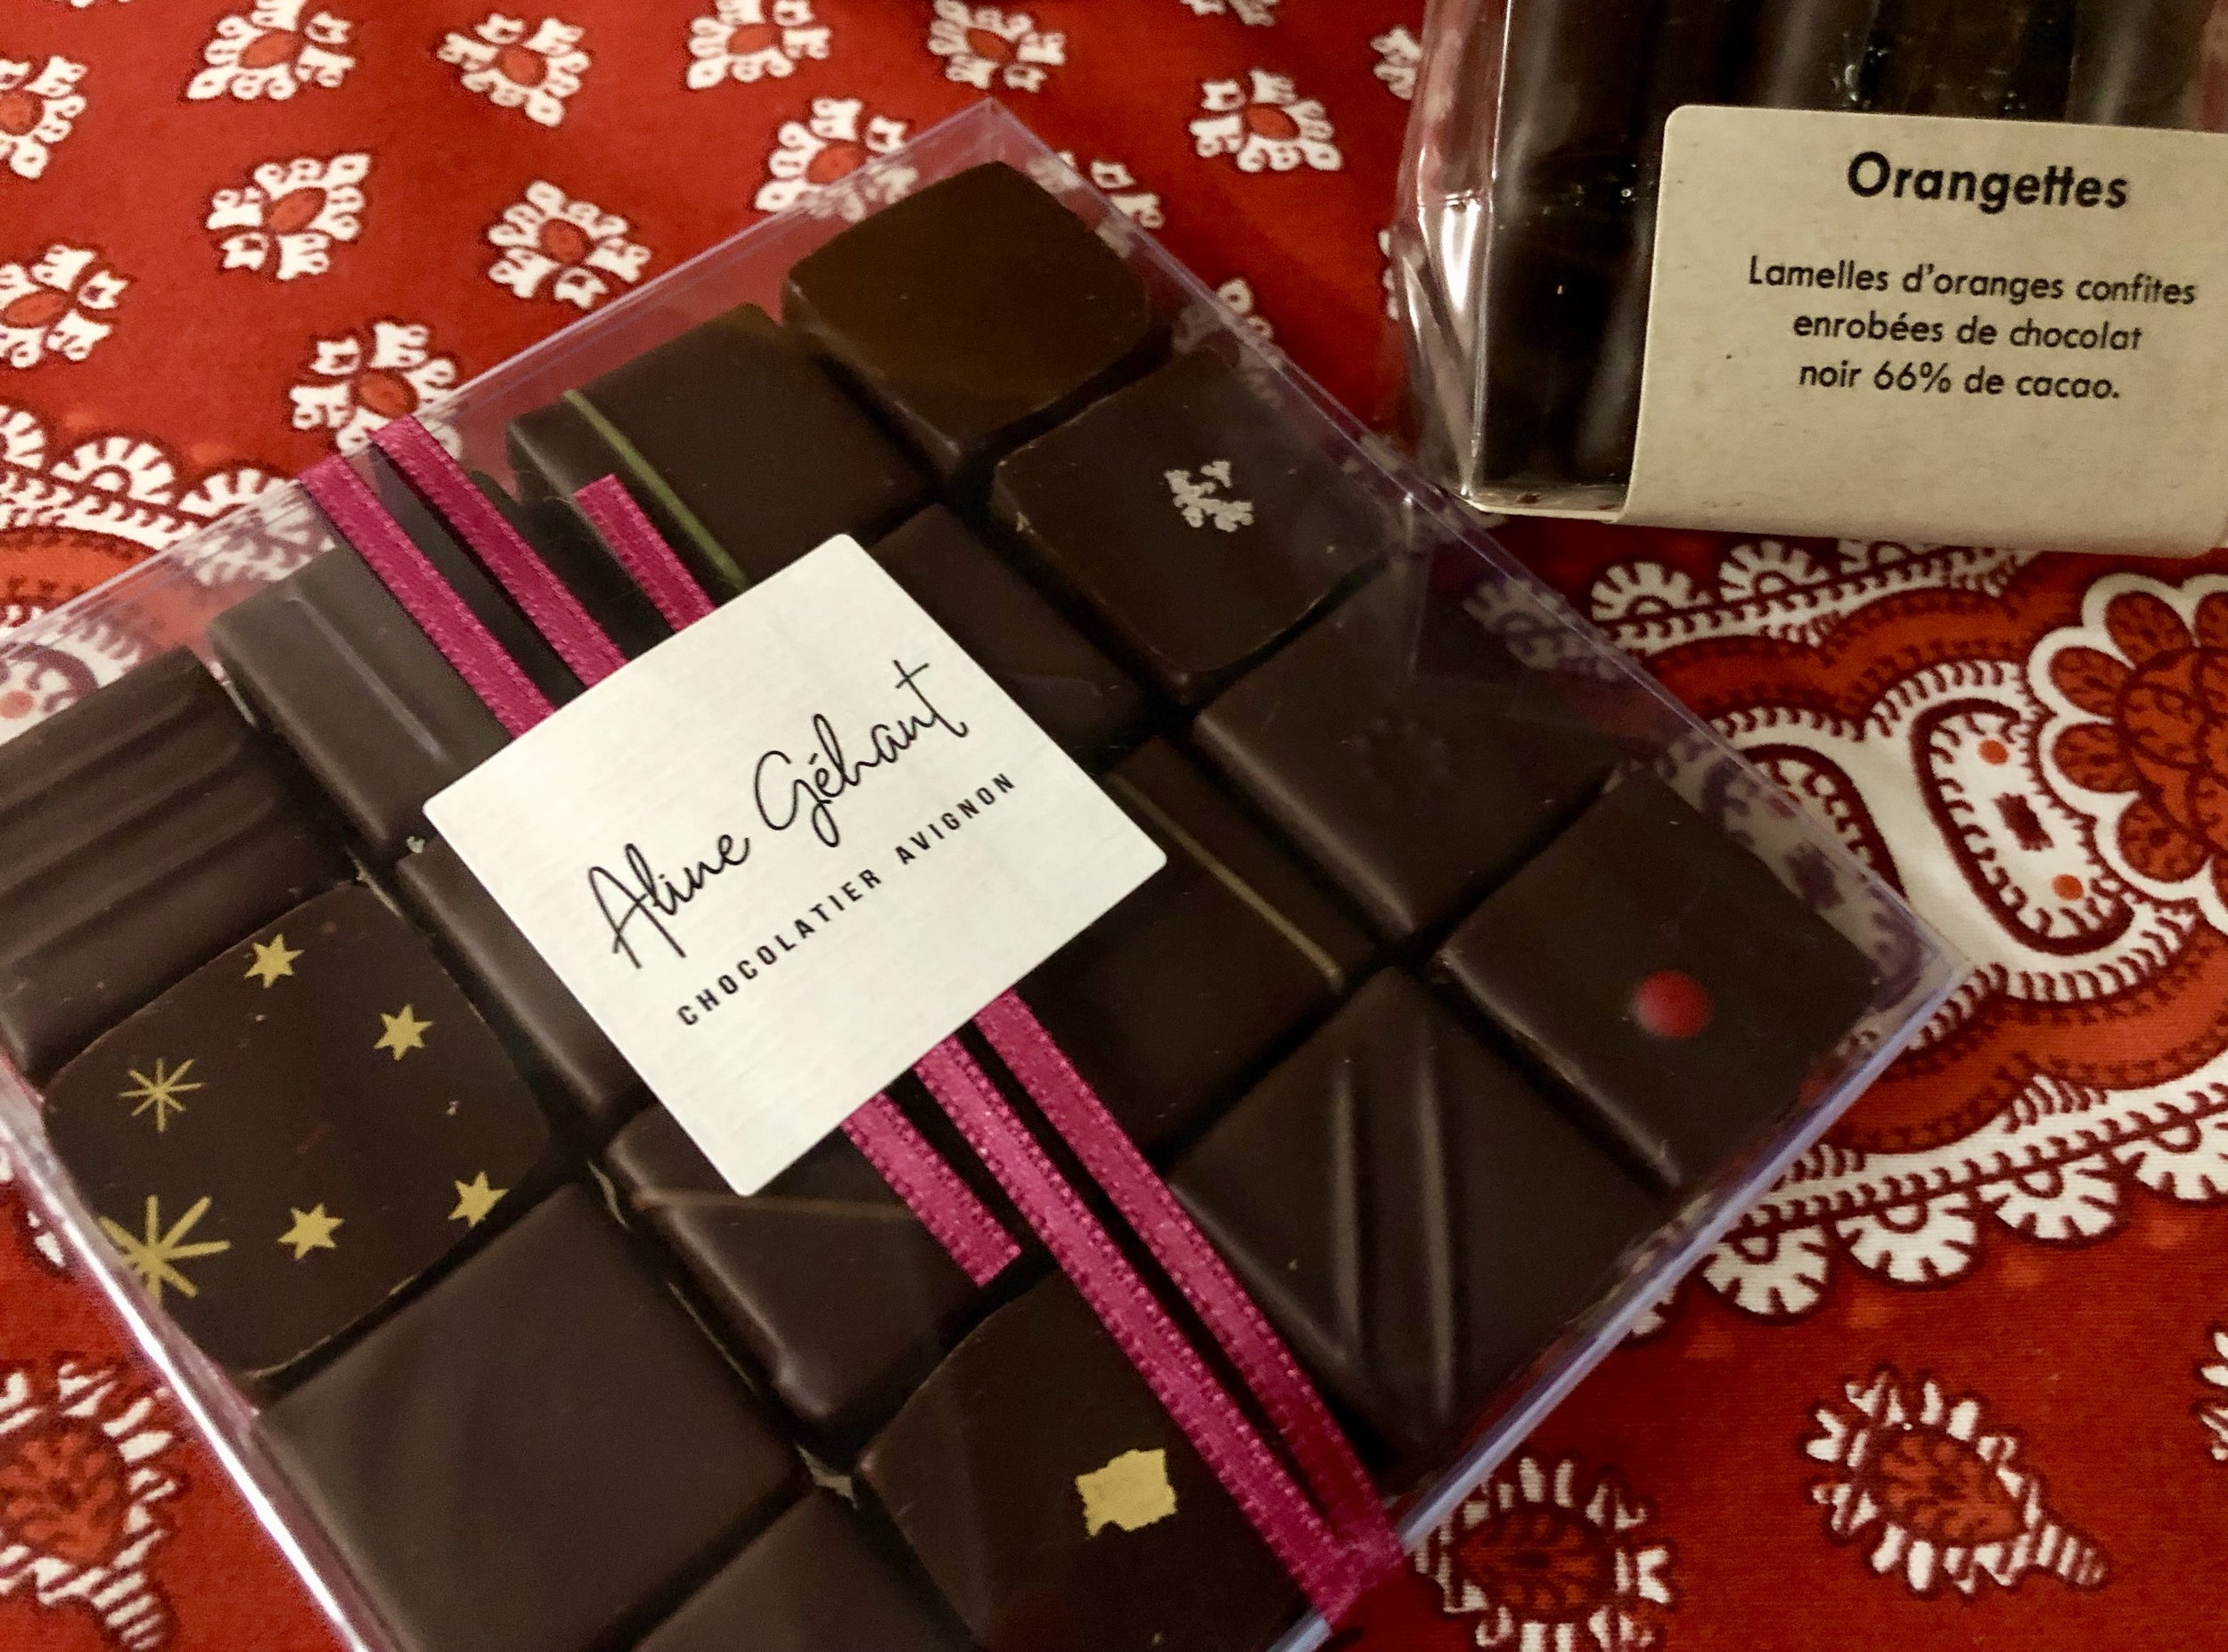 A selection of gânache-filled chocolates from Avignon chocolatier  Aline Géhant .